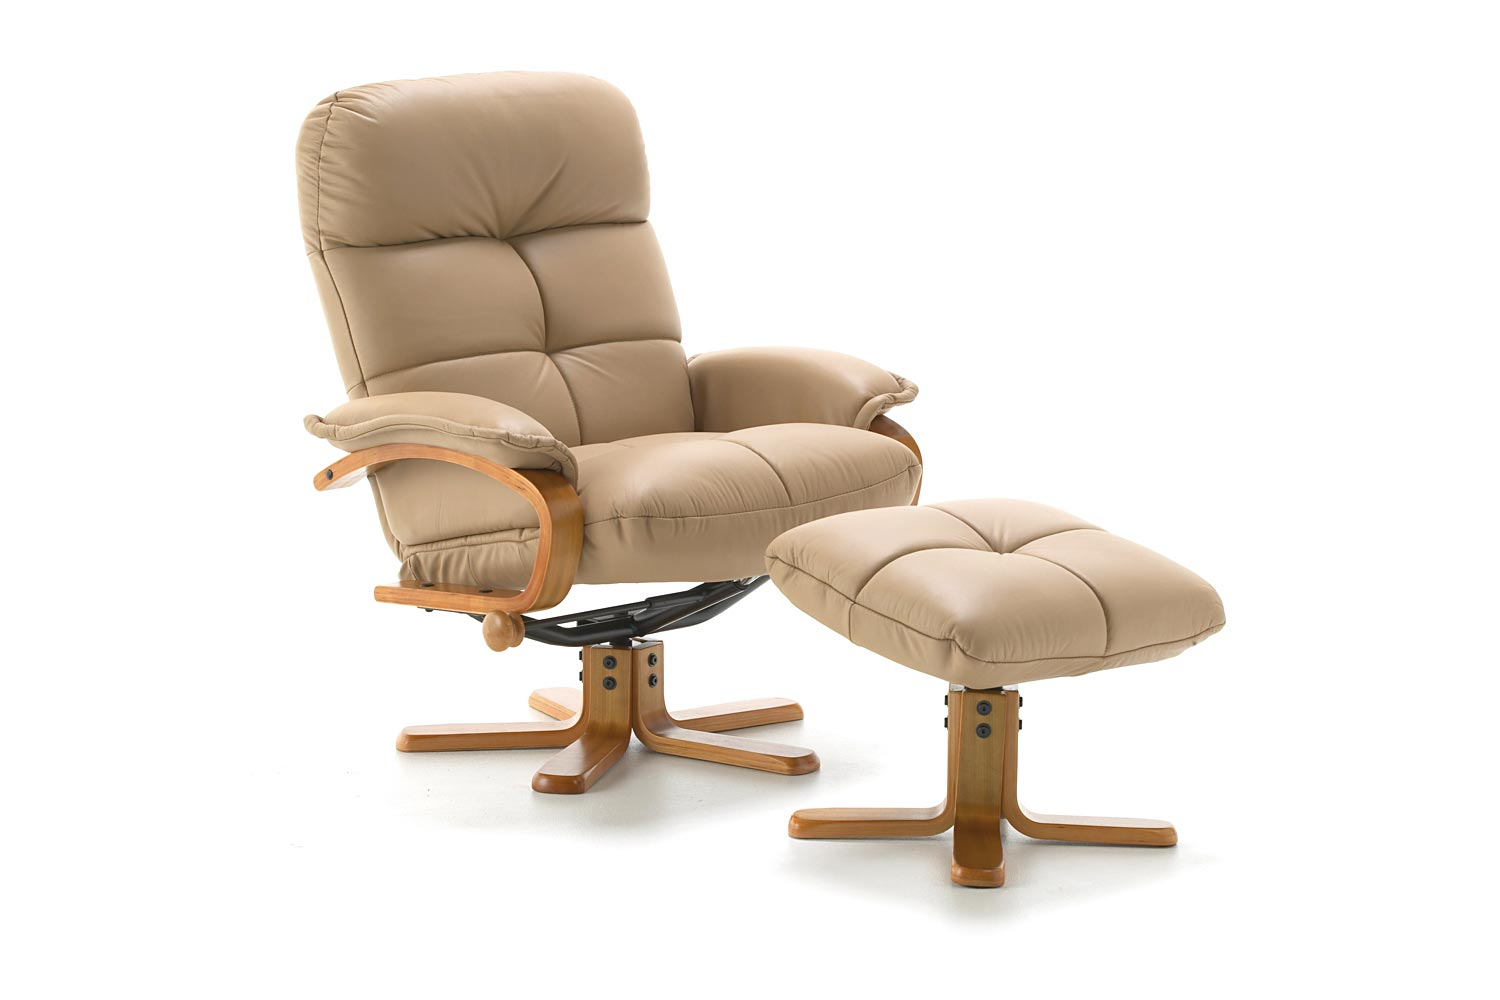 Recliner Chairs Footstools